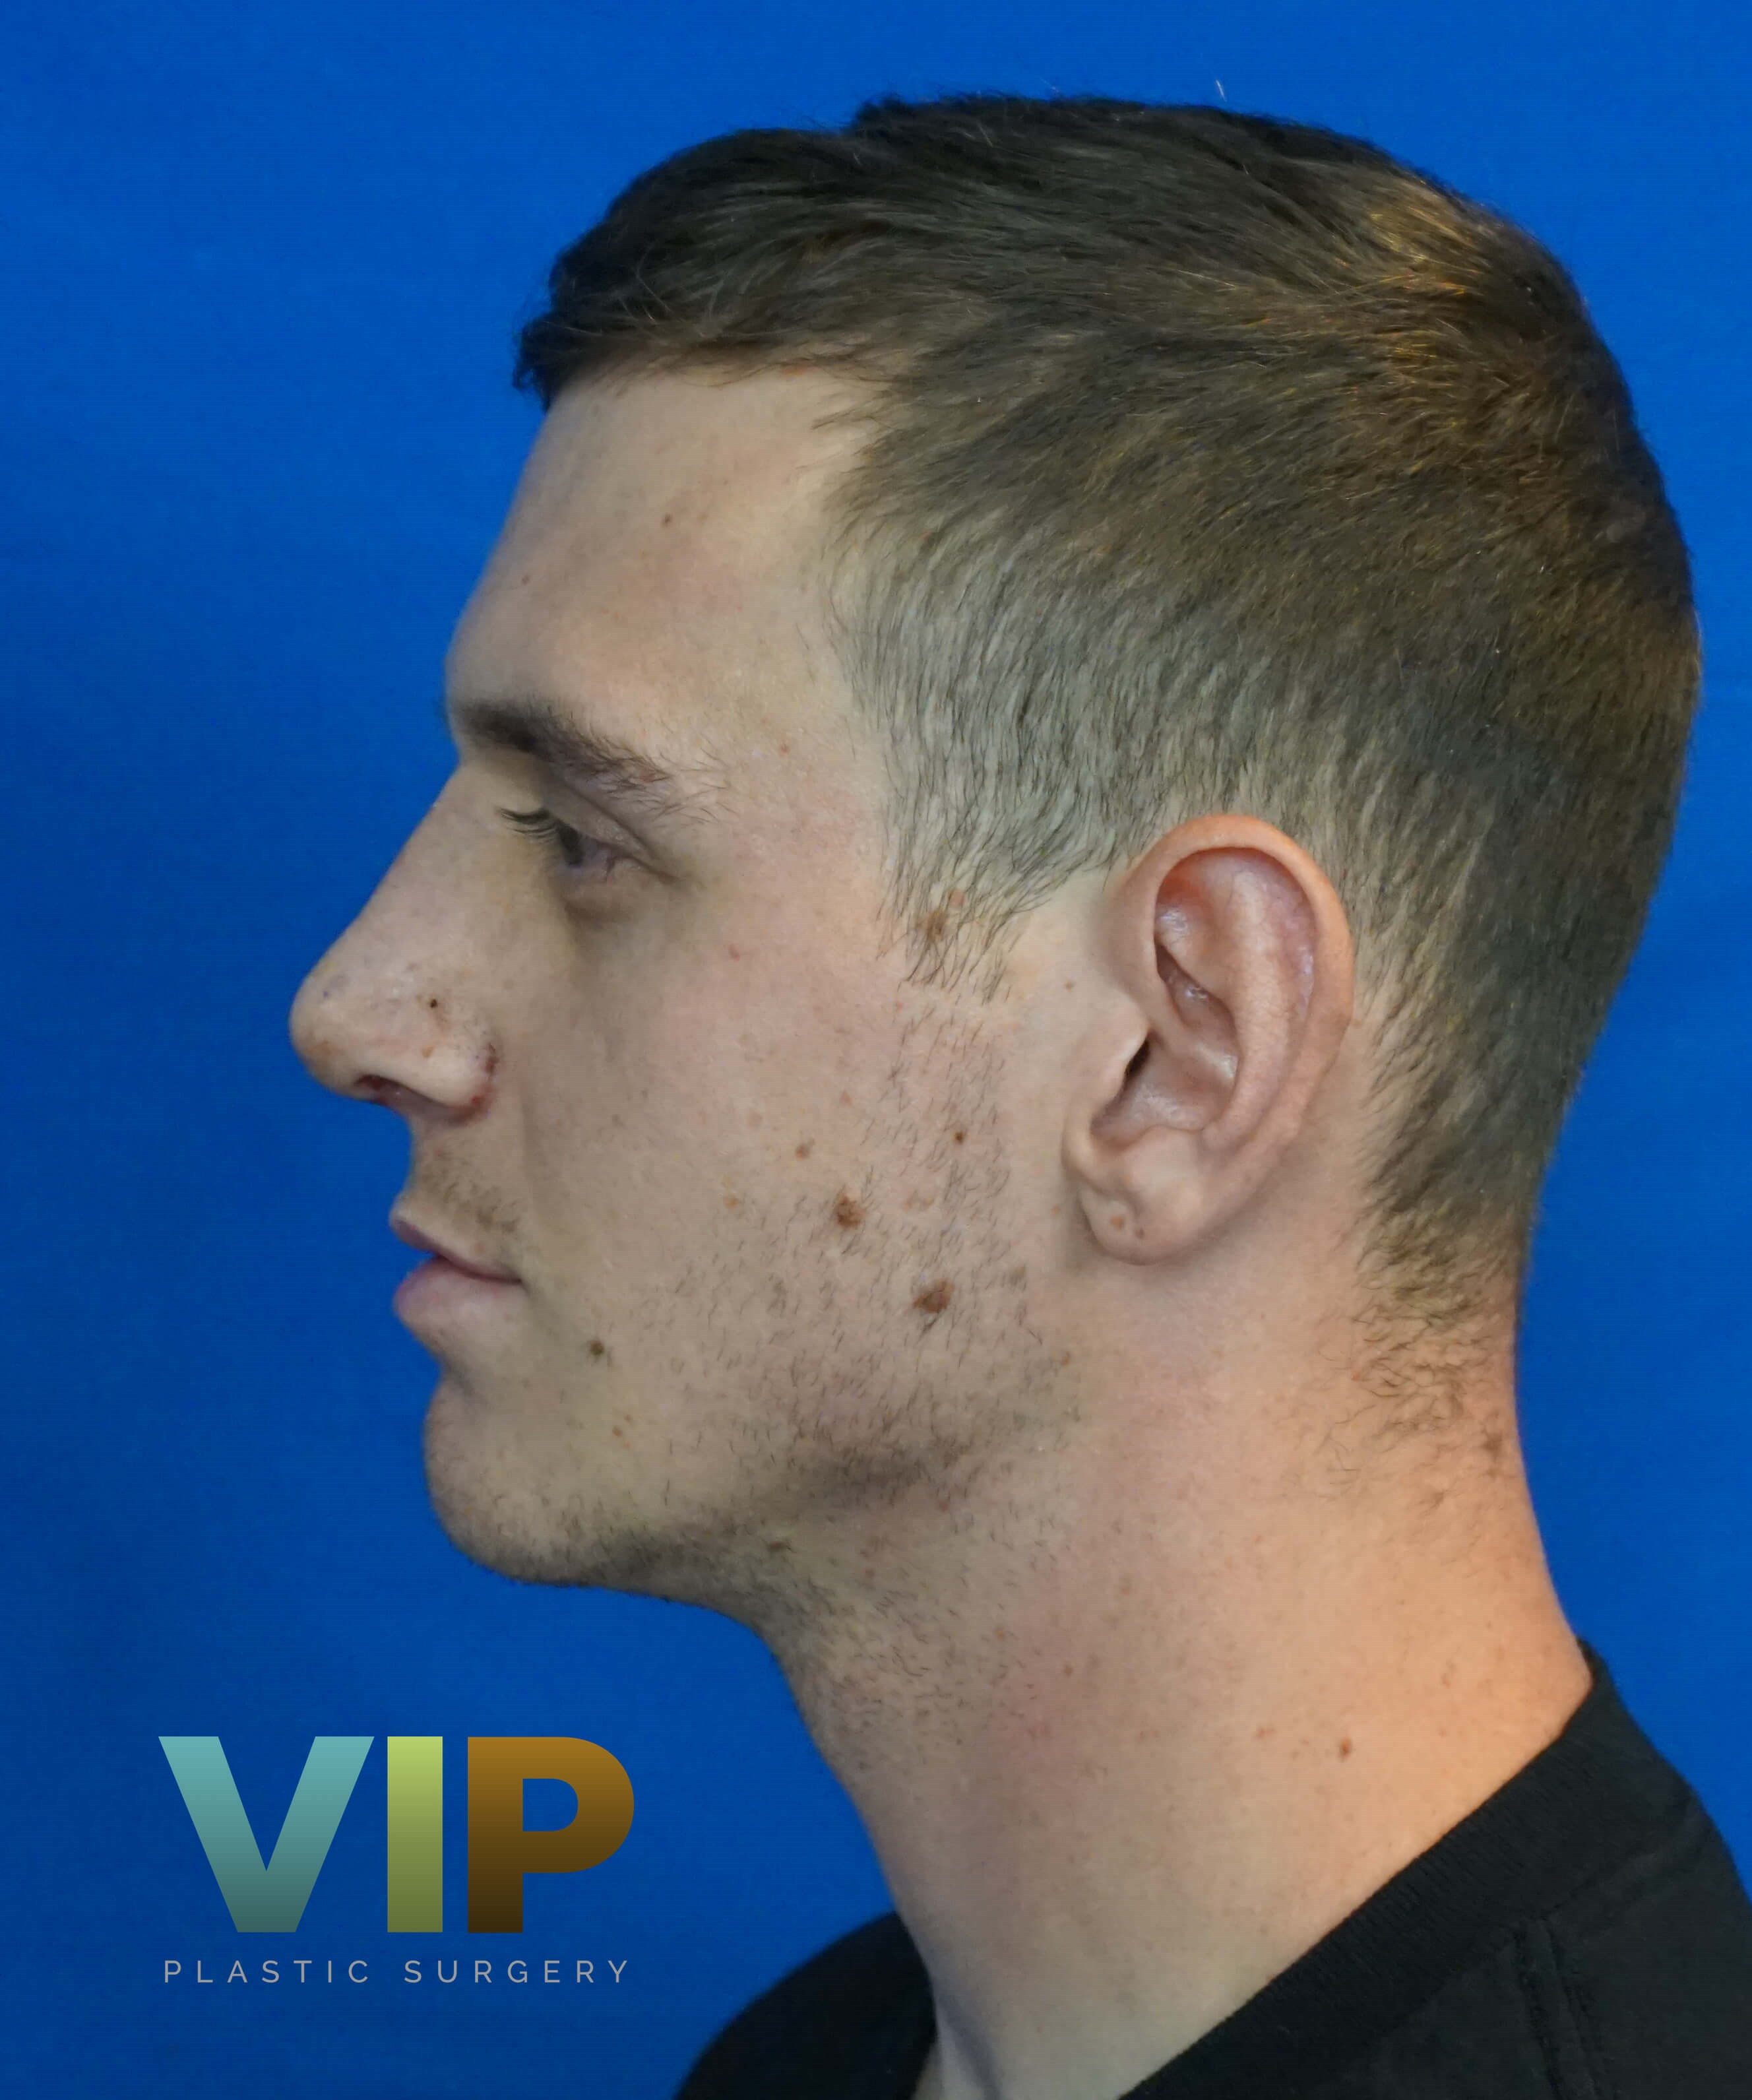 Male Nosejob Las Vegas Rhinoplasty After Picture